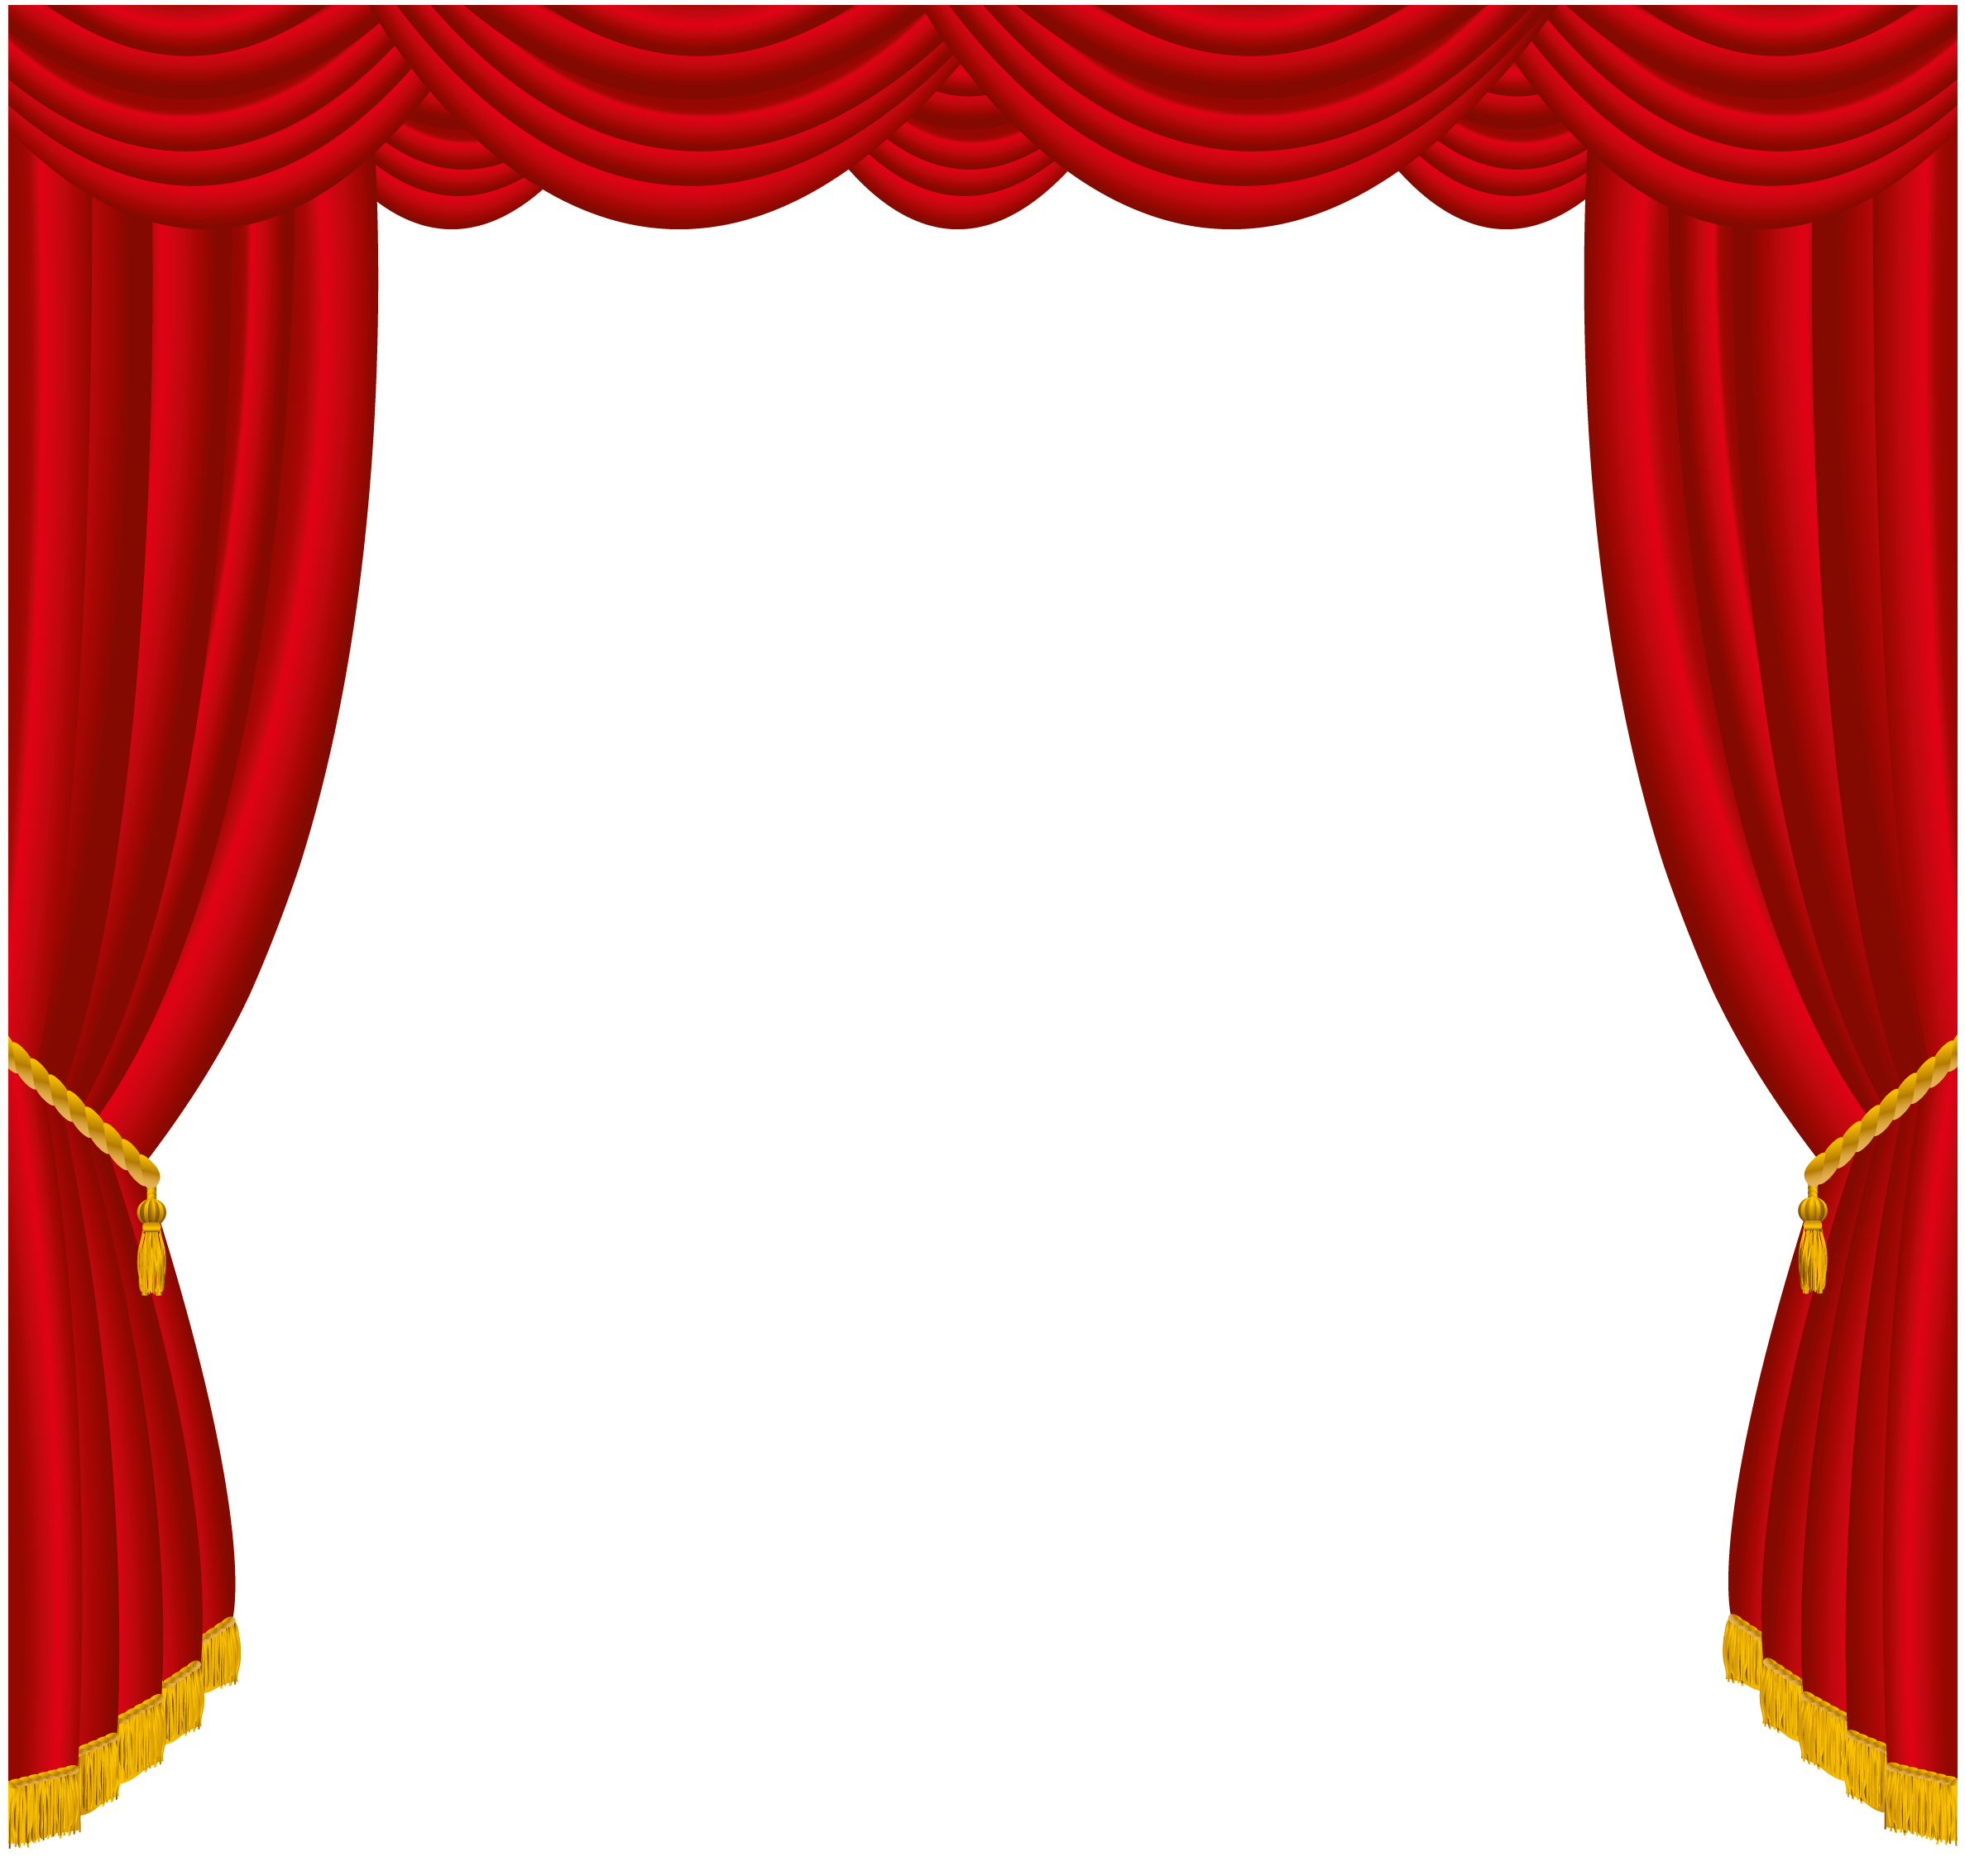 Transparent red curtains decor. Theatre clipart broadway shows